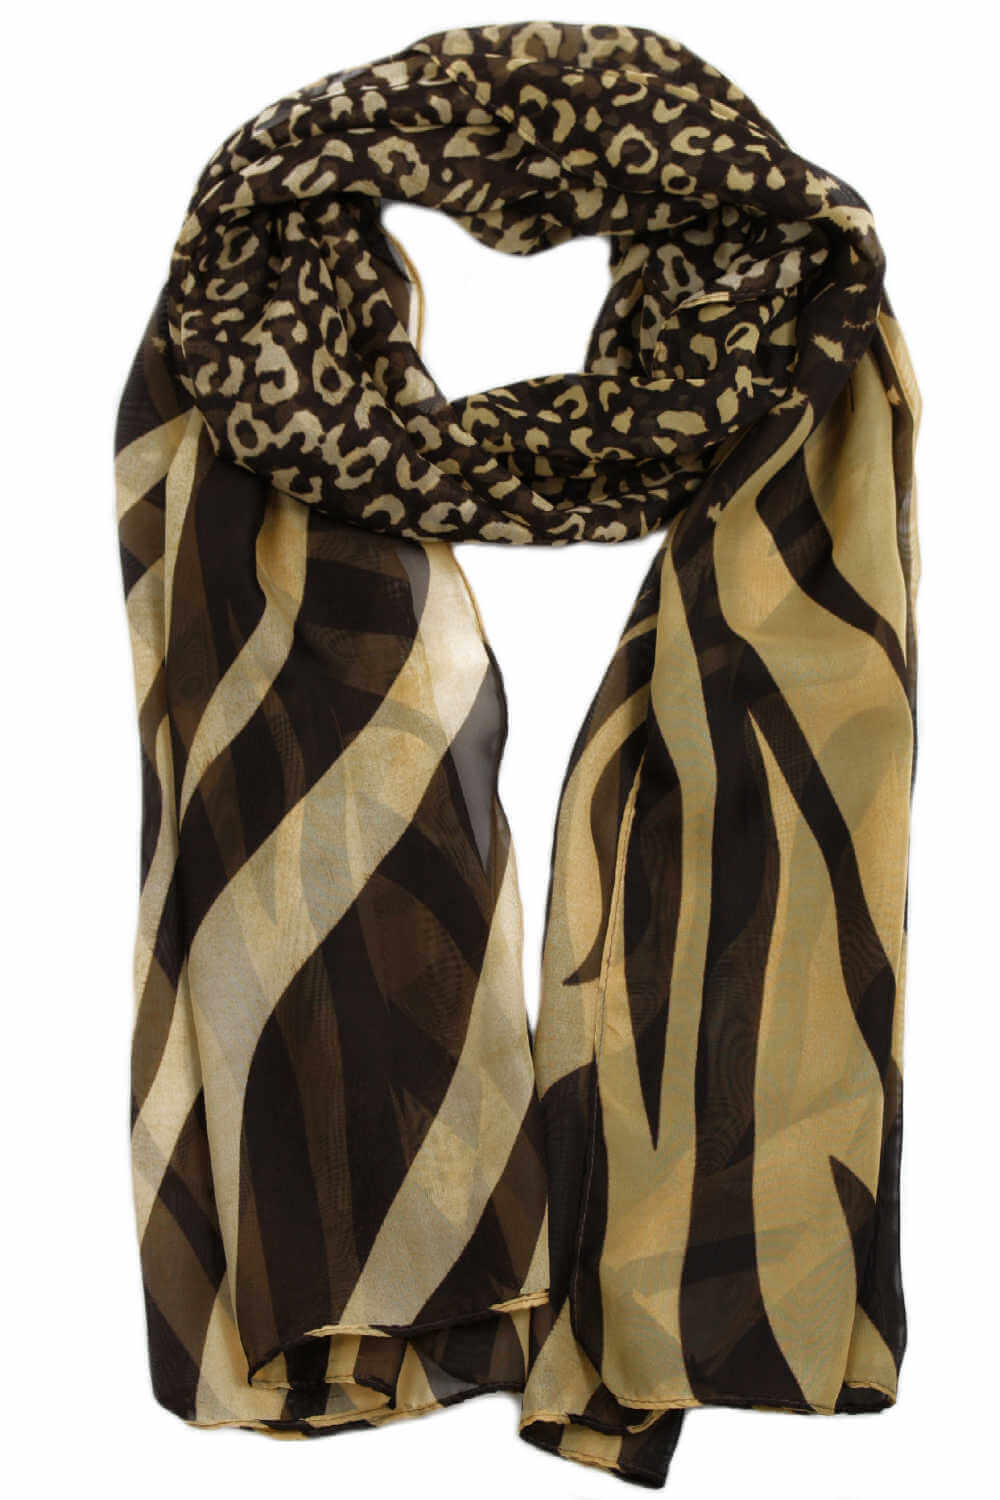 animal-print-scarf-leopard-zebra-brown-caramel